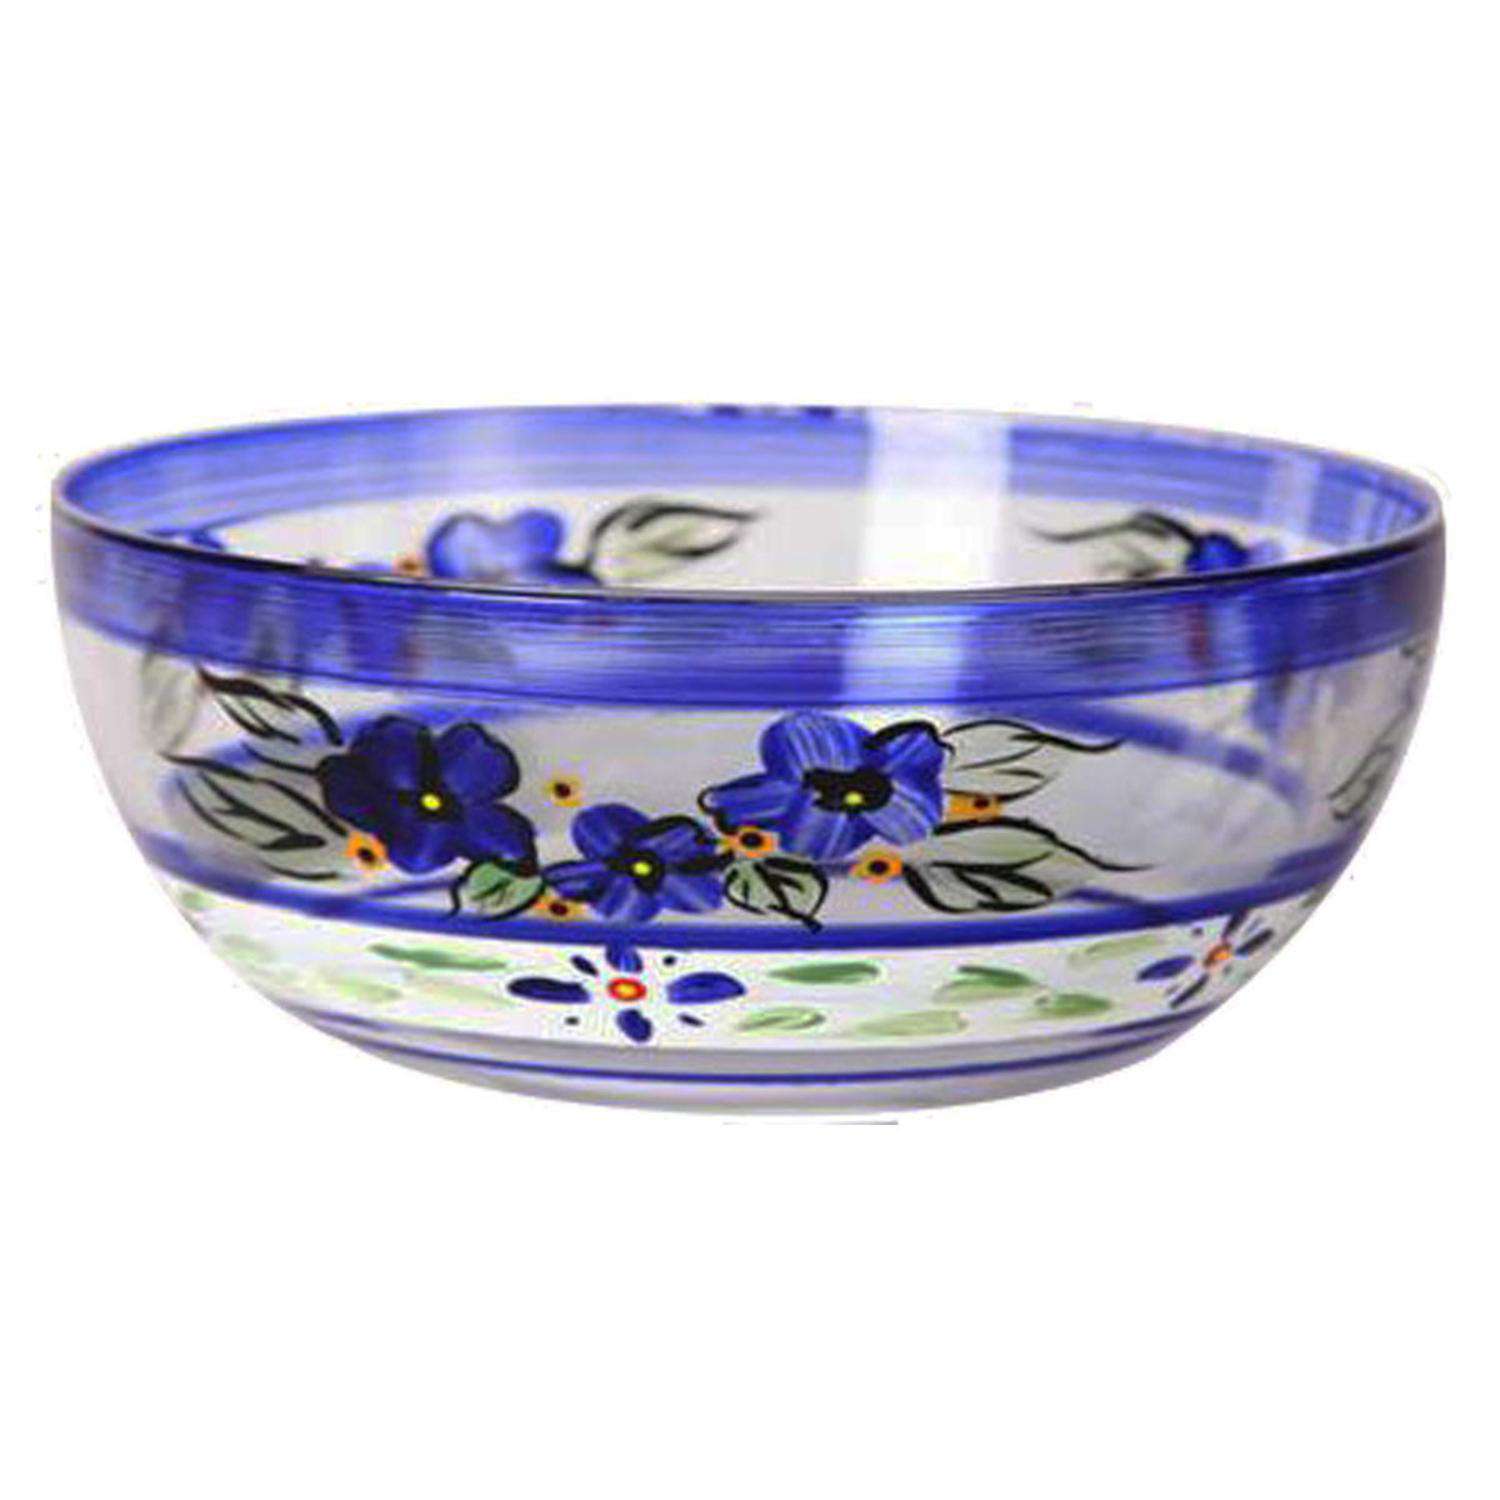 """Blue Floral with Blue and White Stripes Hand Painted Glass Serving Bowl 11"""" by Crafted Creations"""